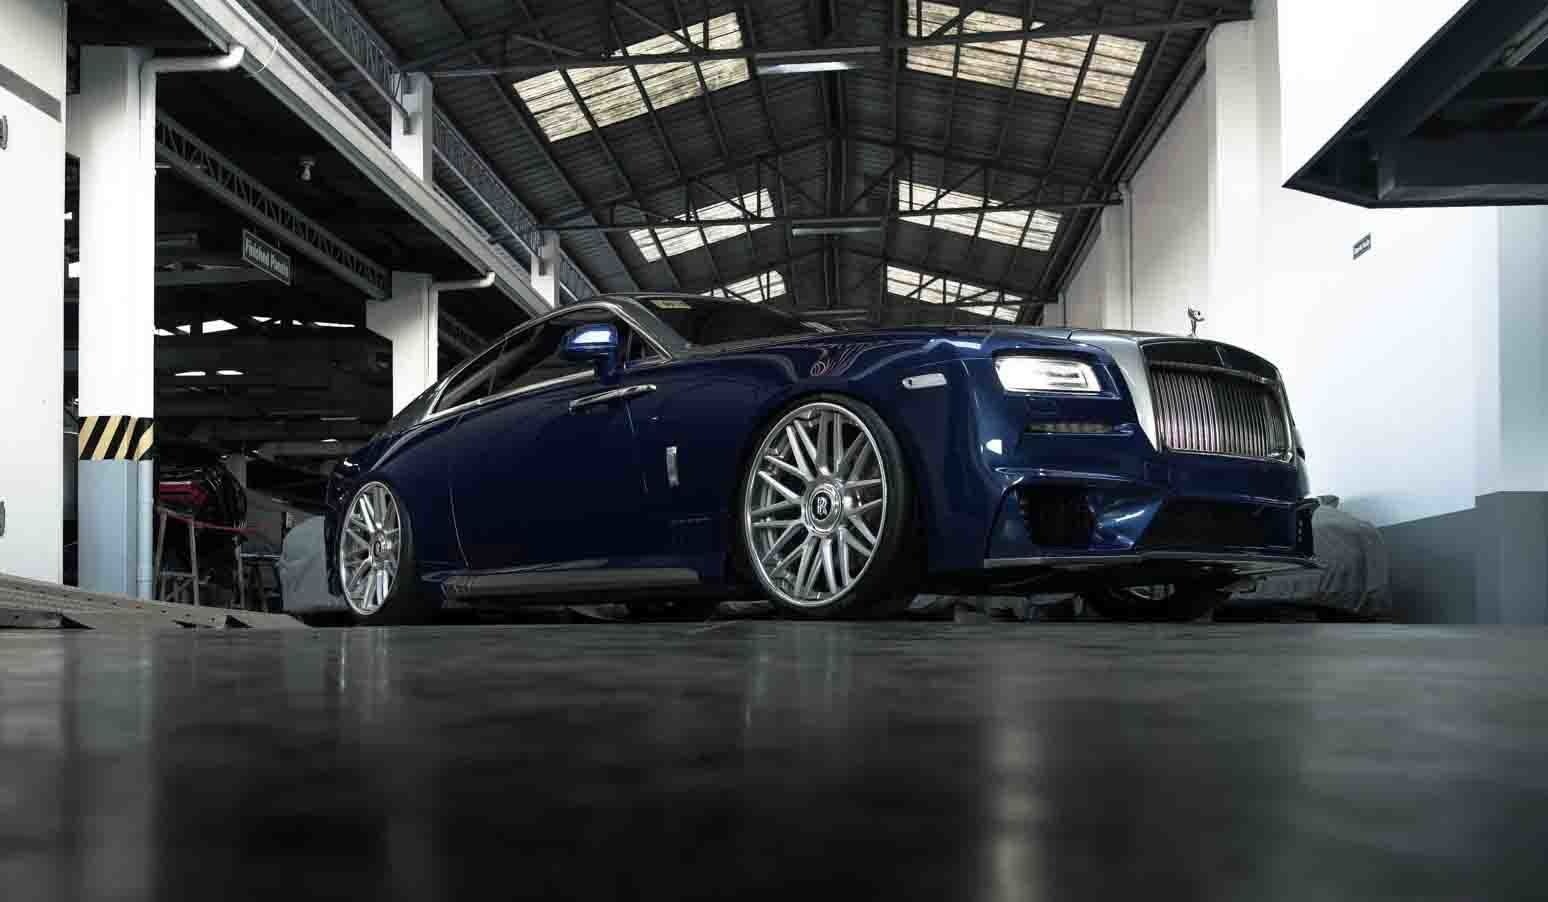 images-products-1-2316-232974604-brixton-forged-rolls-royce-wraith-brixton-forged-cm10-24-inch-brushed-silver-10-1800x1194.jpg